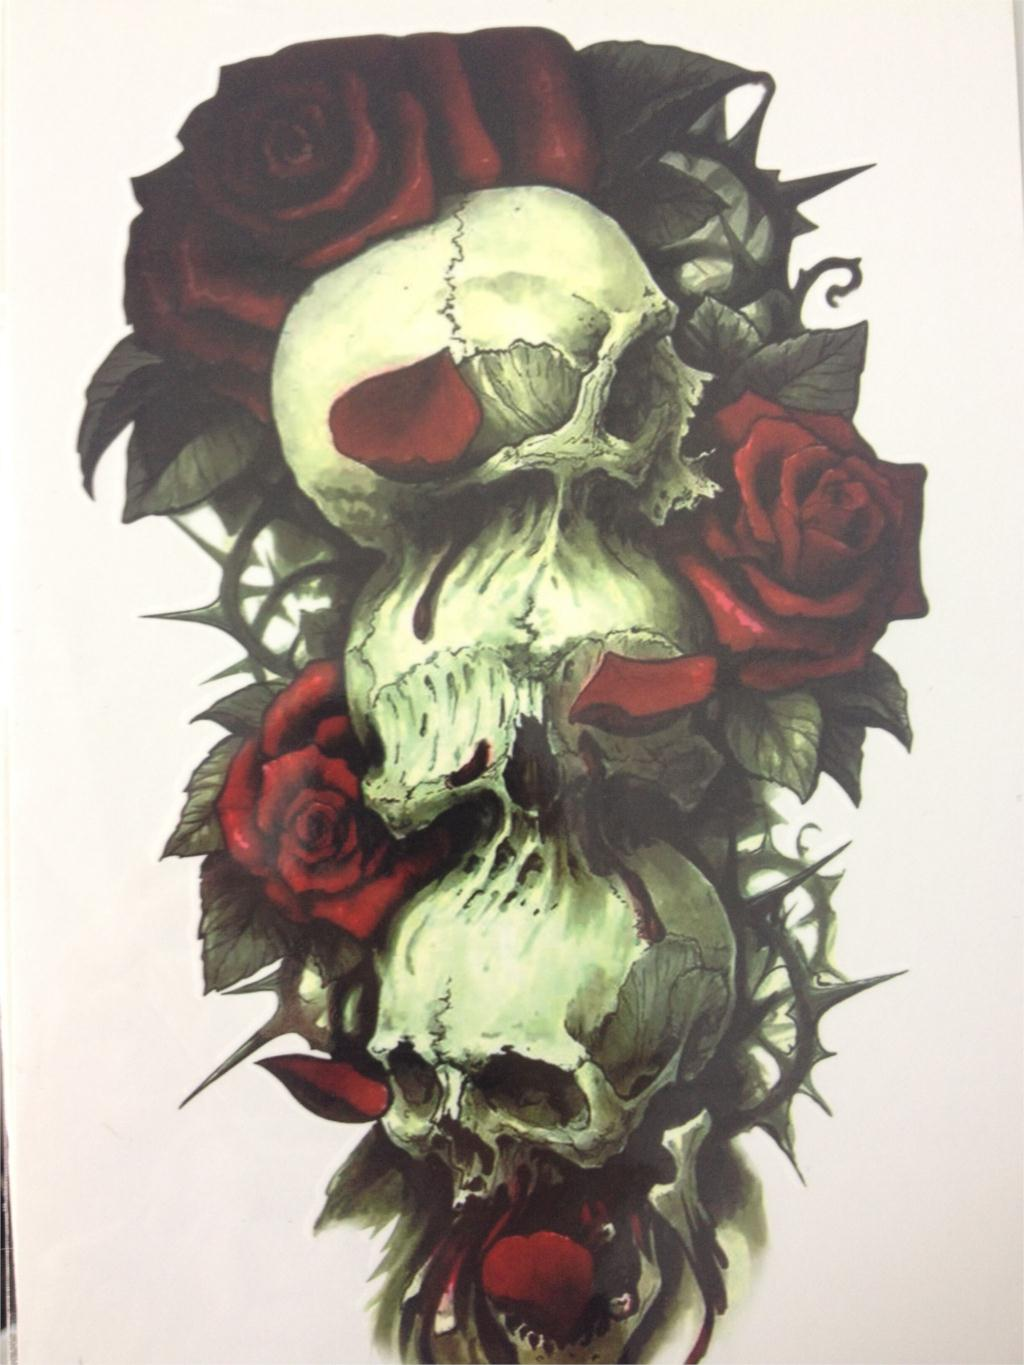 Skull And Red Rose Hot Sale21 X 15 CM Temporary Tattoo Stickers Temporary Body Art  Waterproof #108